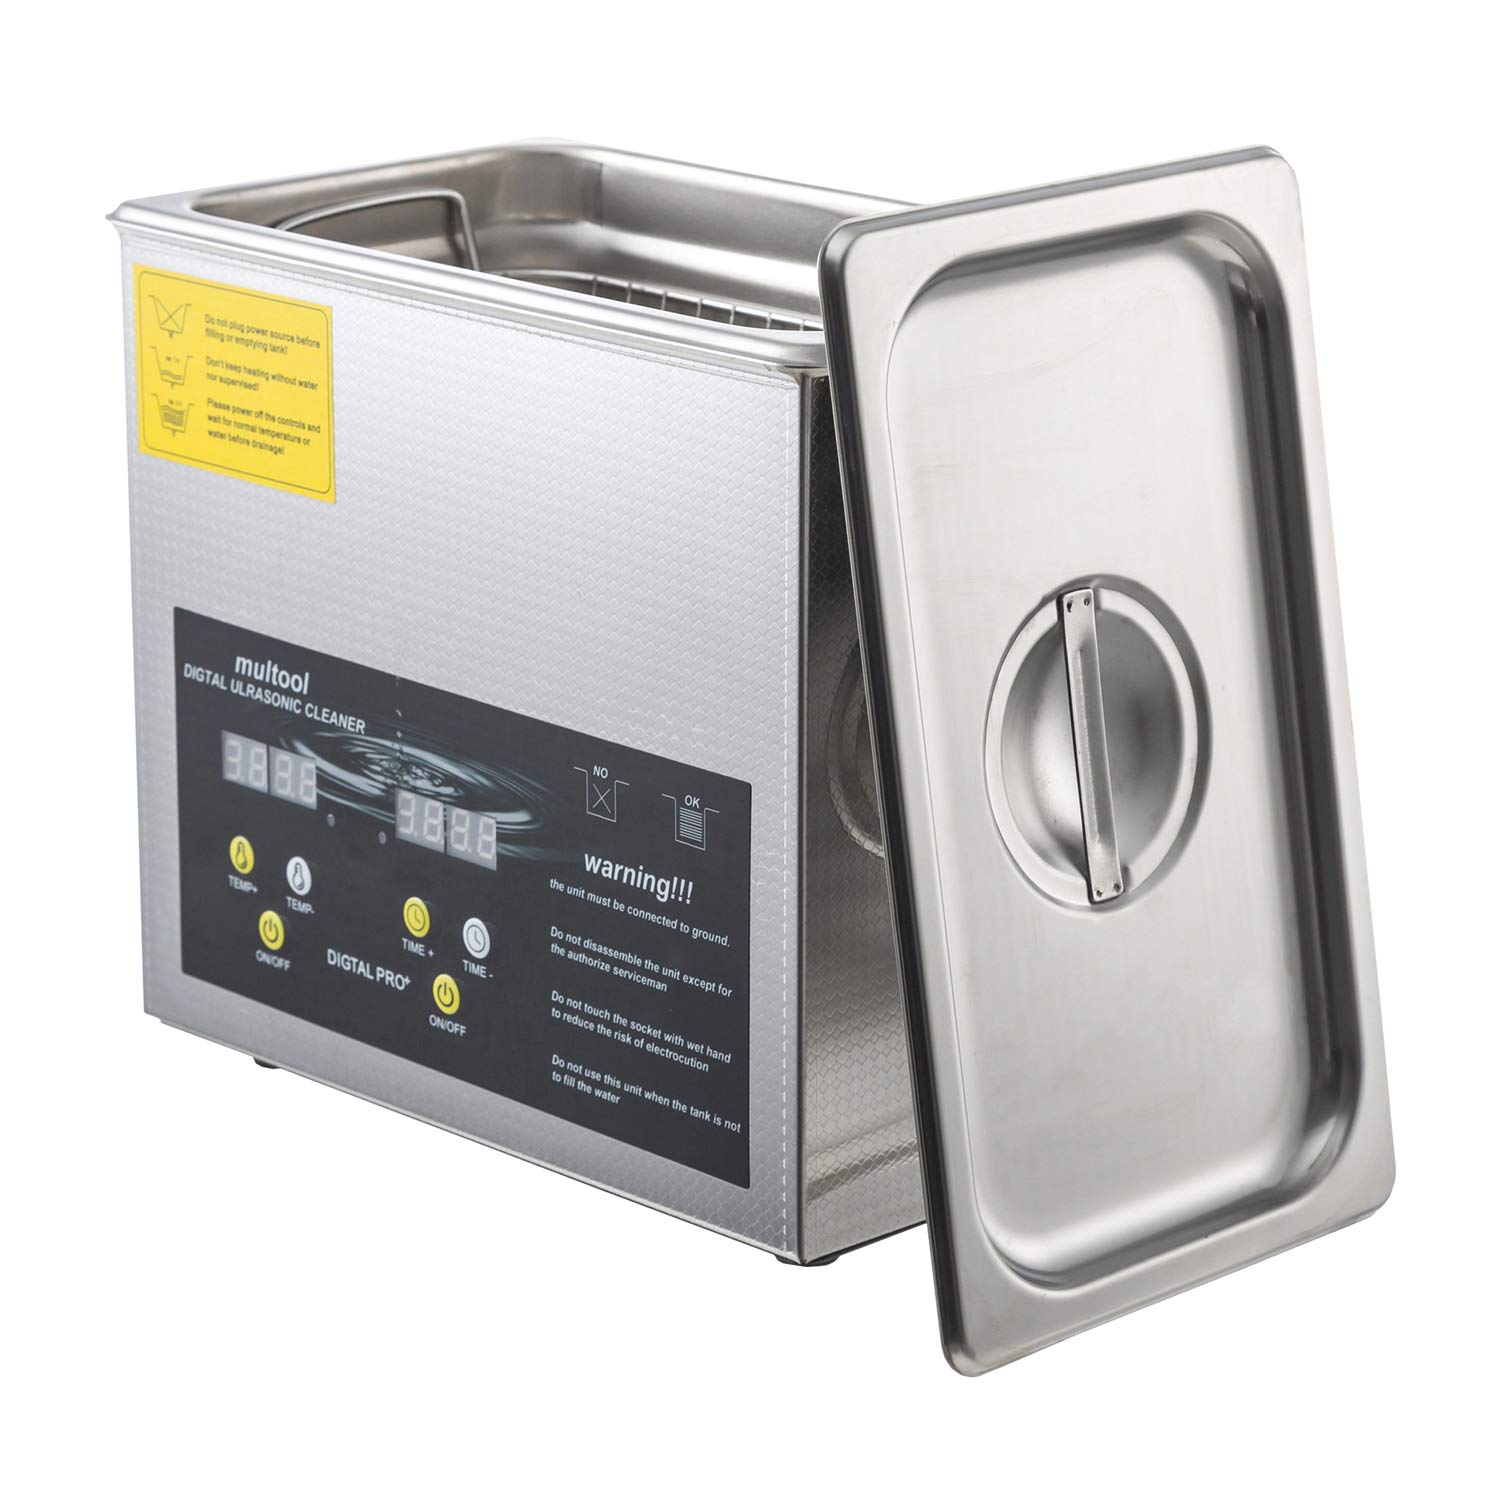 Ultrasonic Cleaner Commercial and Jewelry Ultrasonic Cleaner with Heater and Digital Control (3.2L)